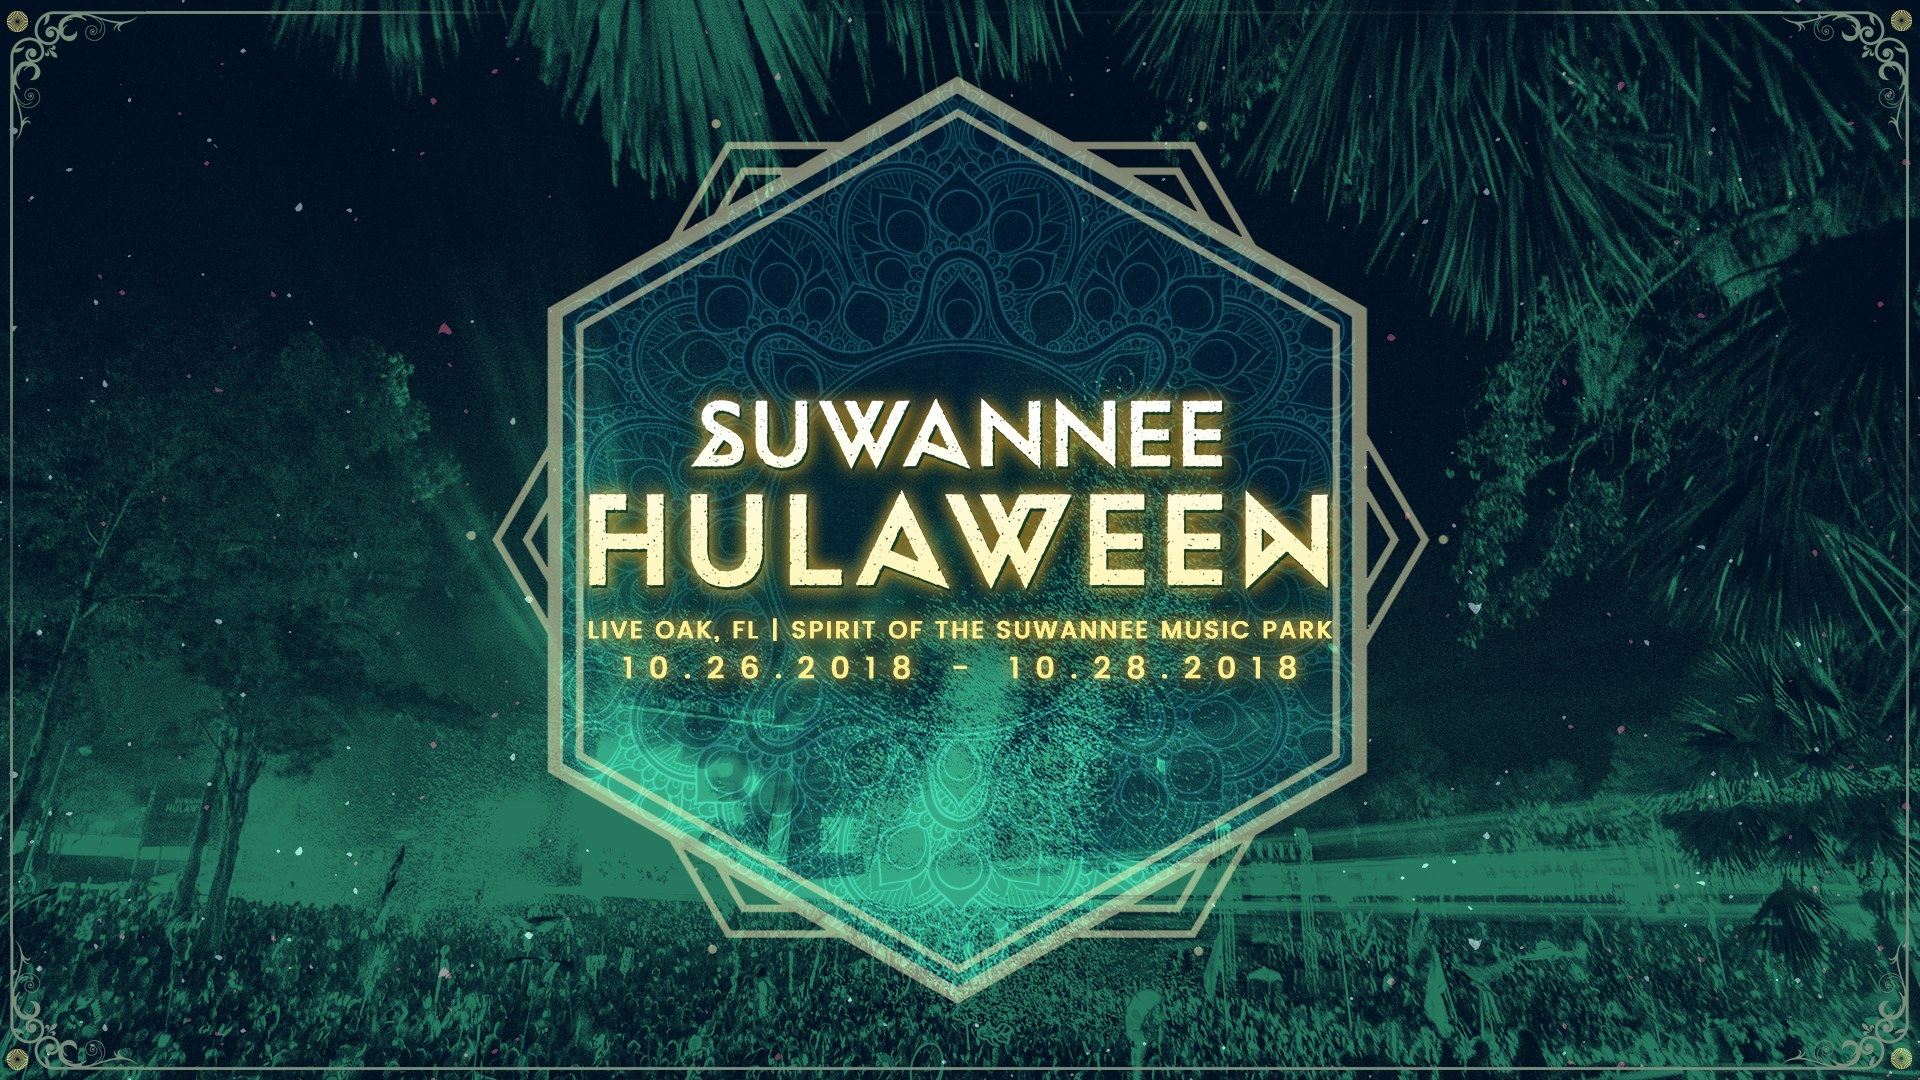 Are you more coachella or bonnaroo? Suwannee Hulaween Welcomes The Spooky Music Festival Central